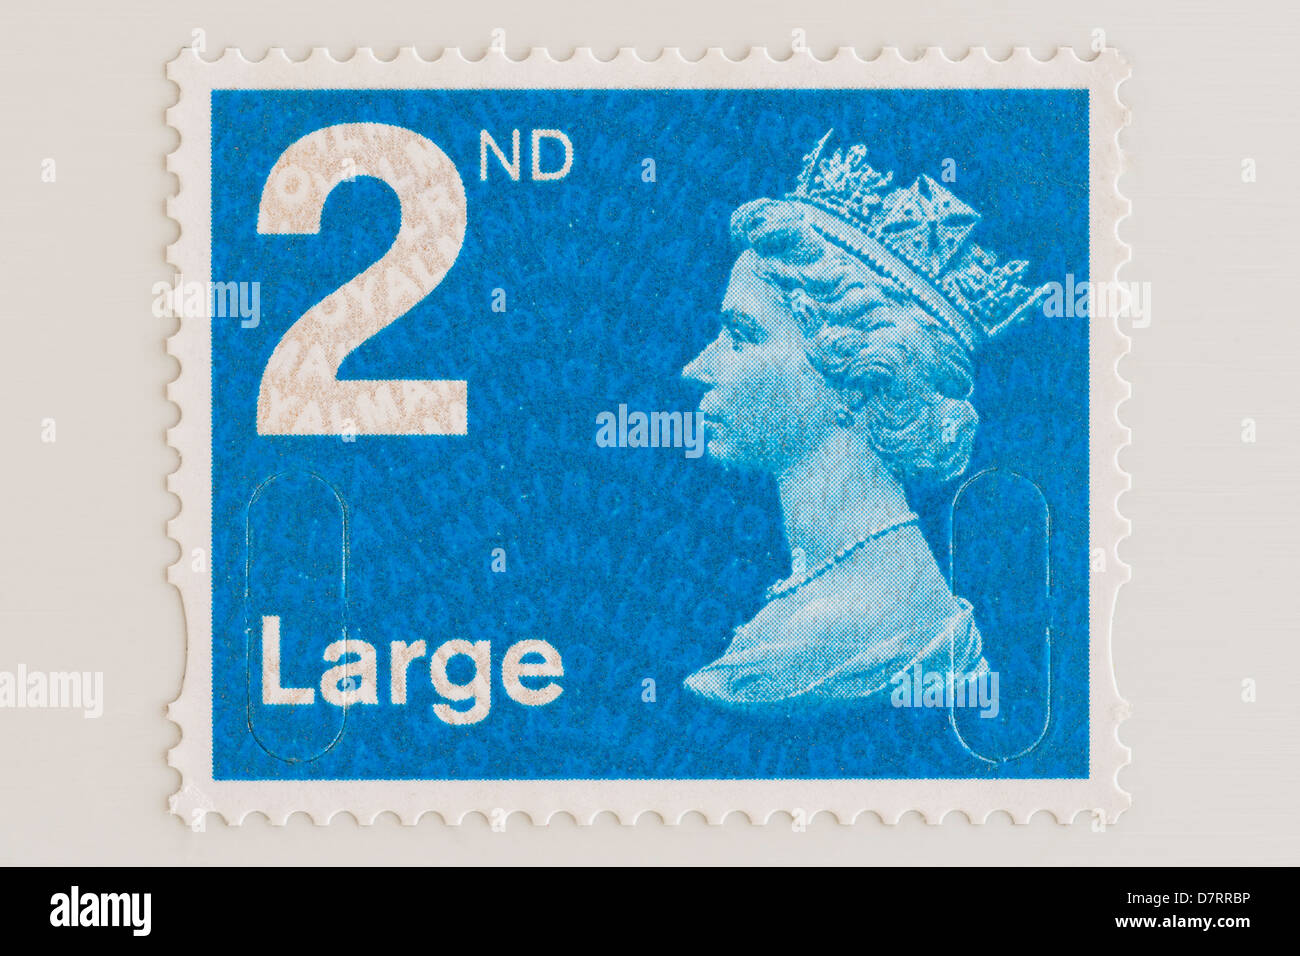 A Royal Mail 2nd class postage stamp for LARGE letters - Stock Image